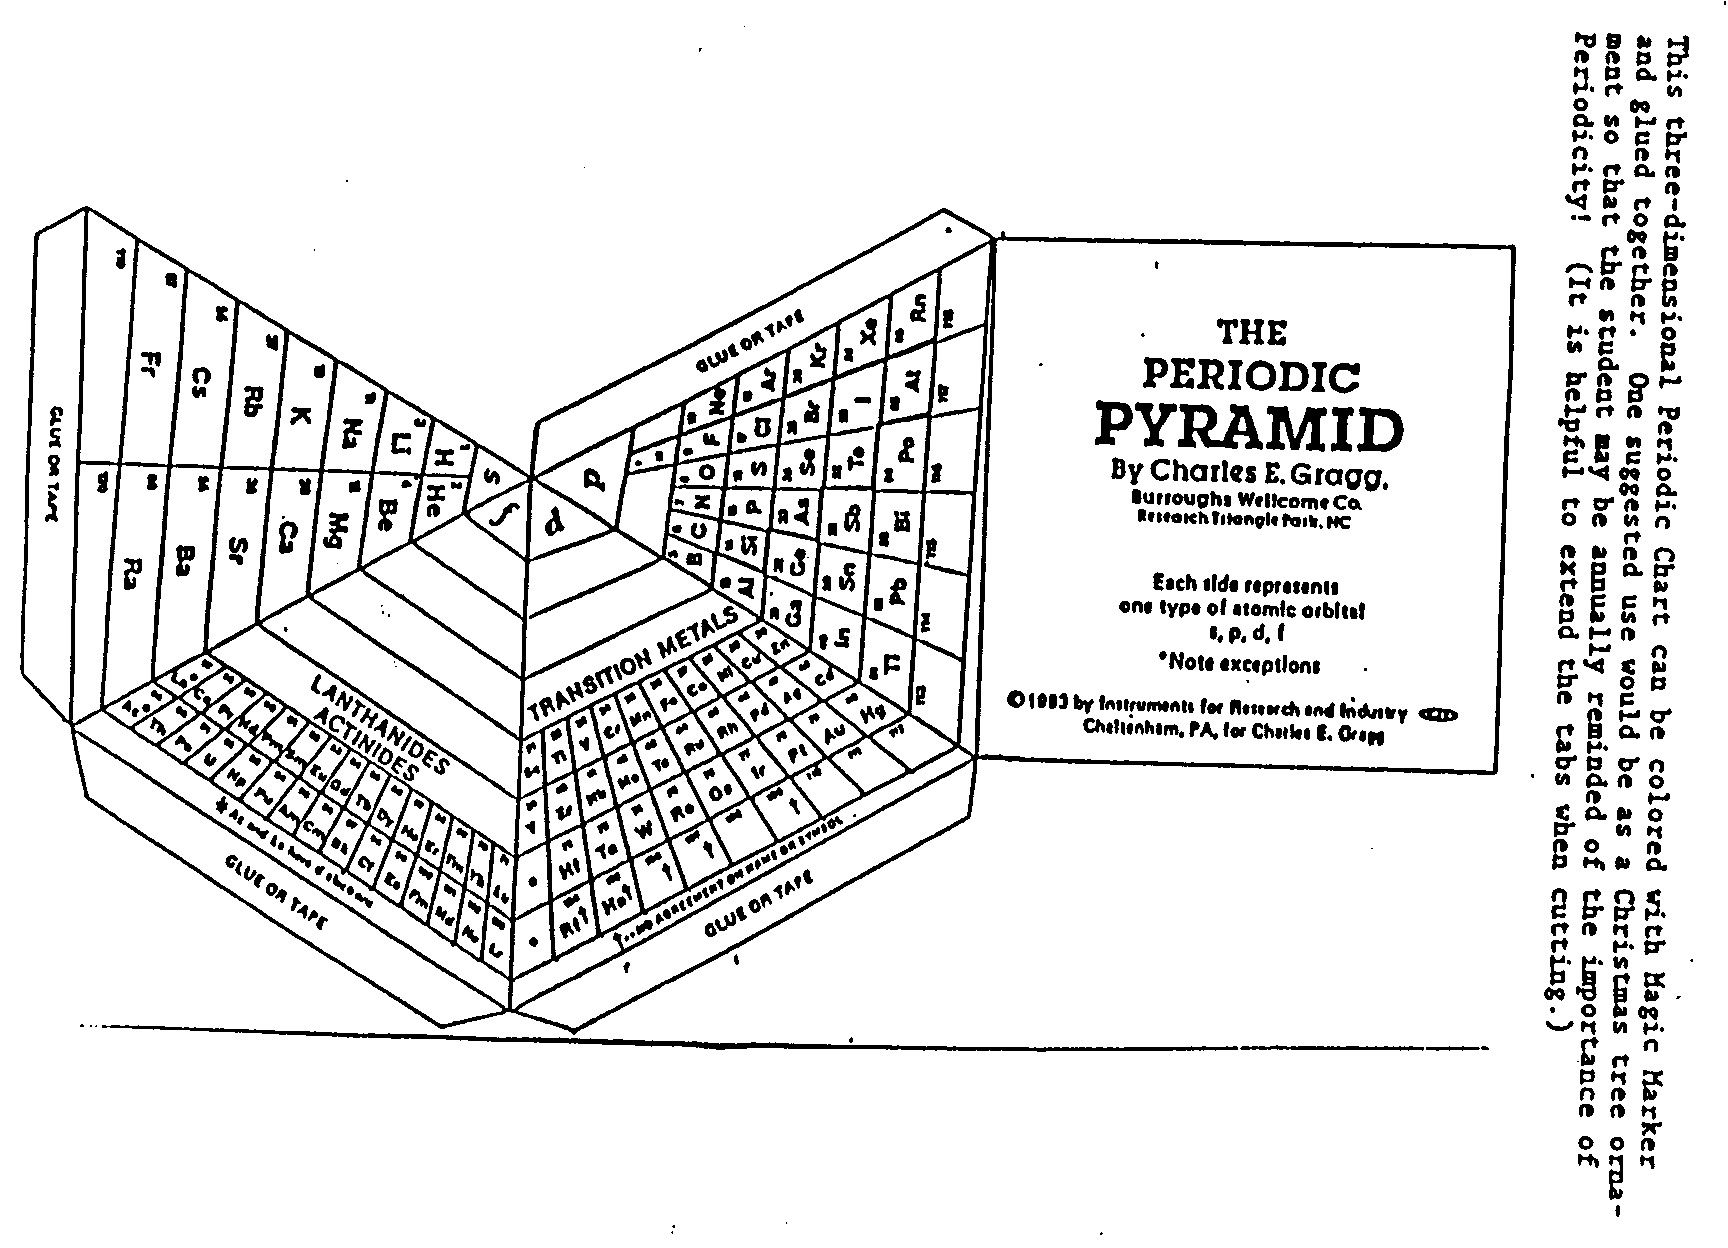 Pyramid Periodic Table (Model) by Charles E. Gragg (1983